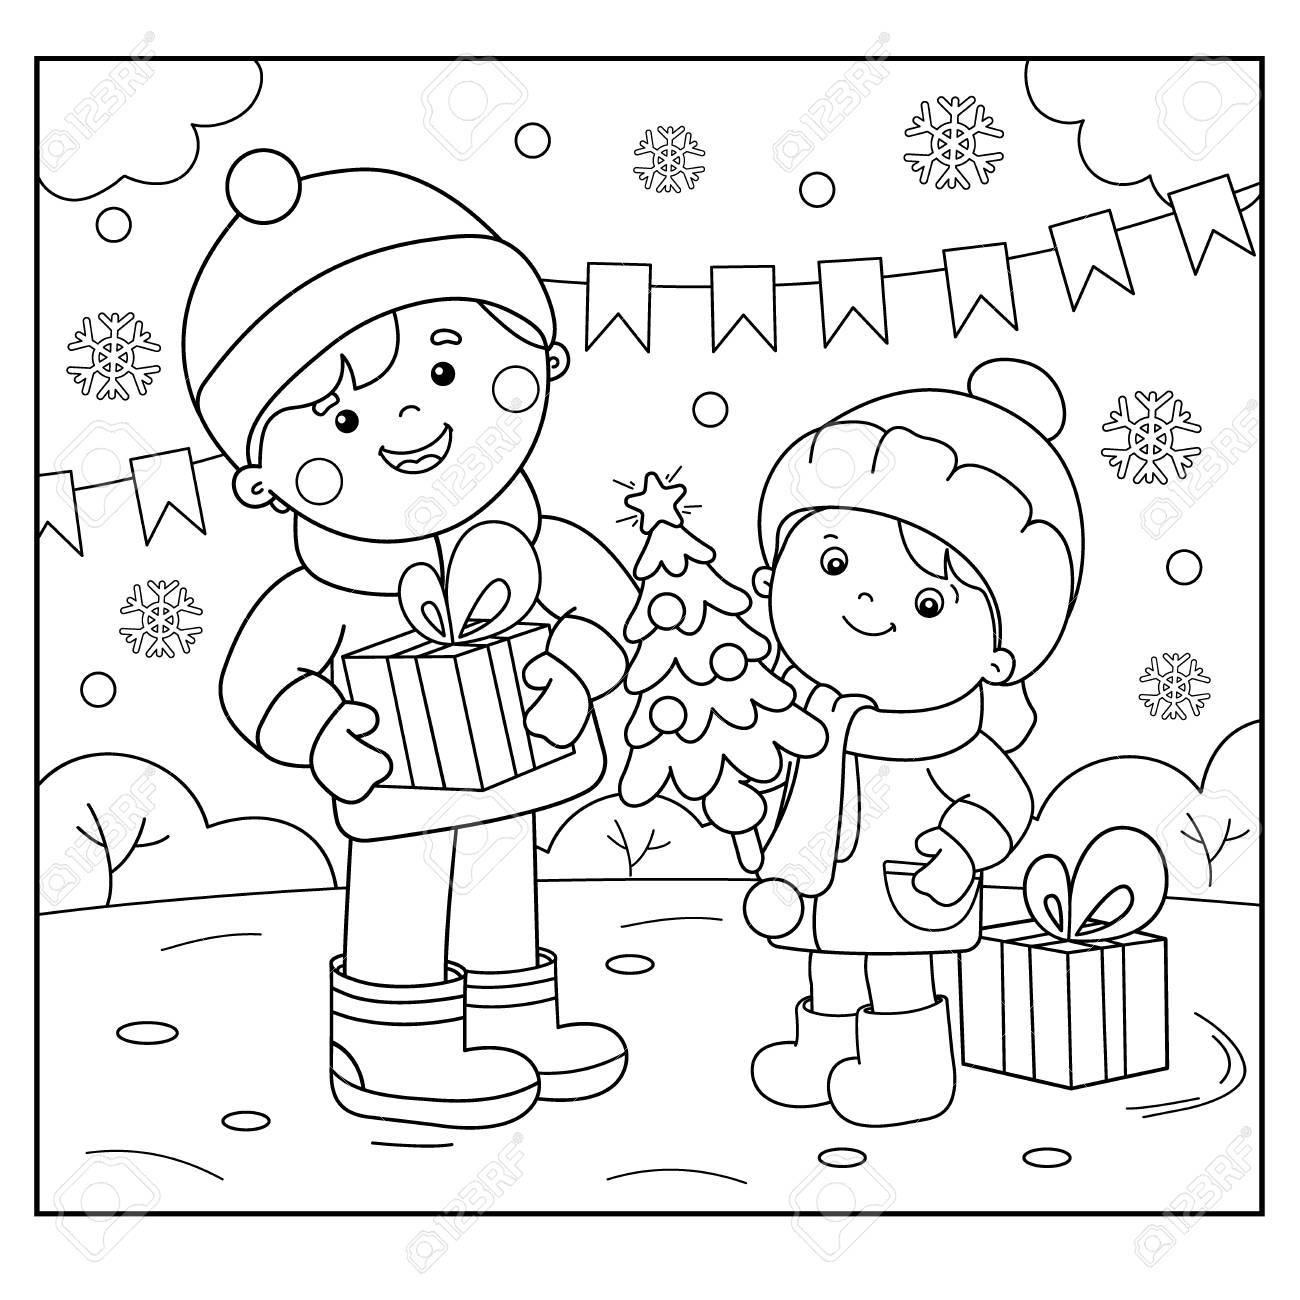 Coloring Page Outline Of Children With Gifts At Christmas Tree New Year